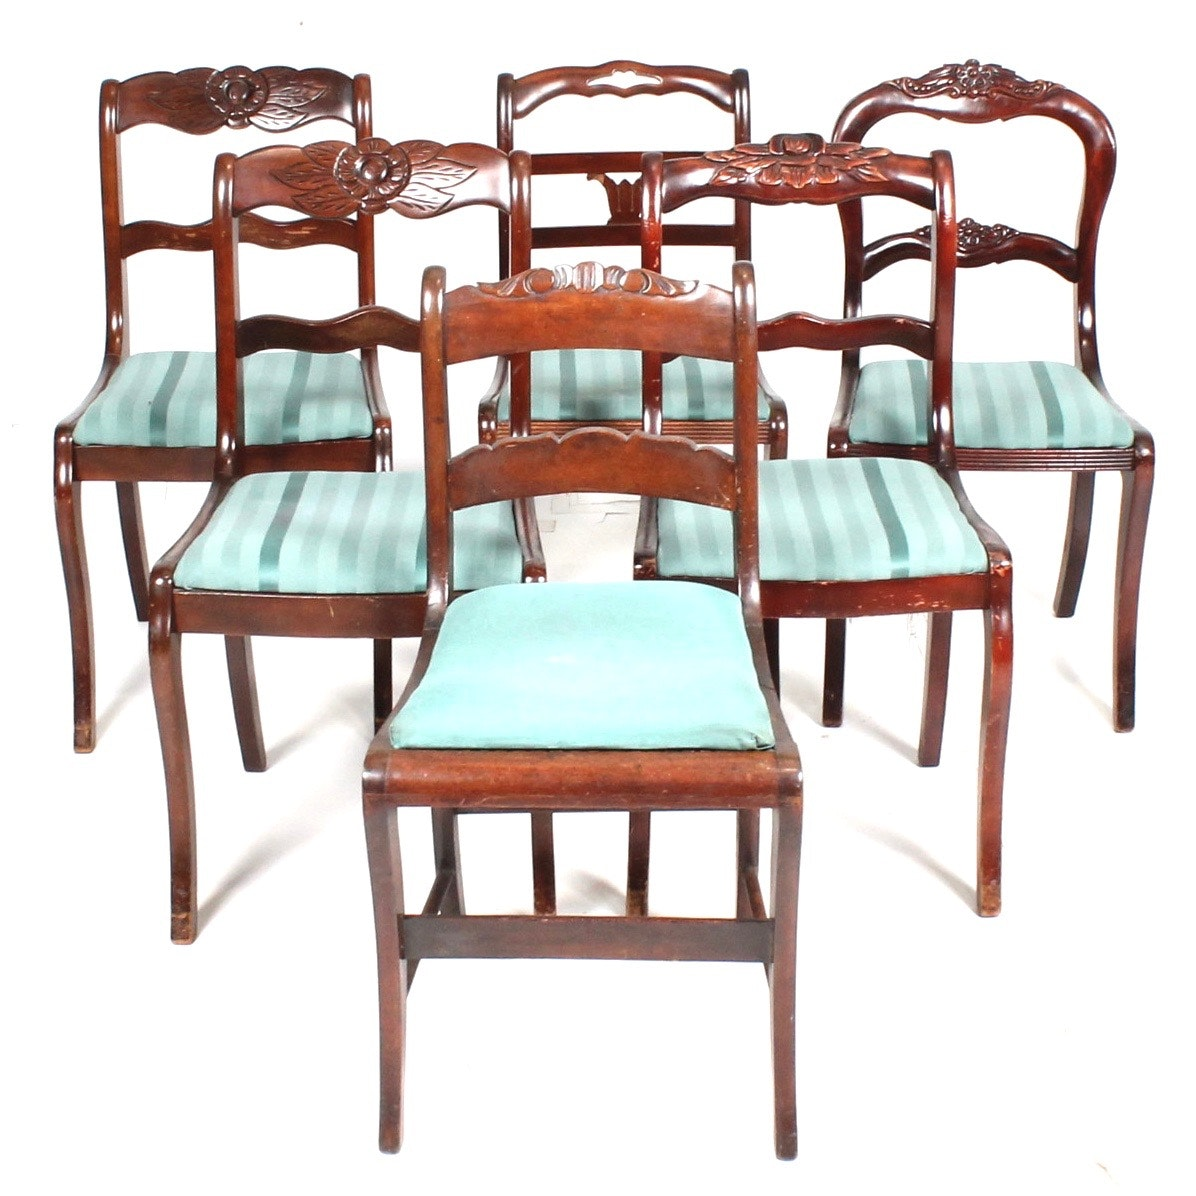 Six Vintage Mahogany Dining Chairs